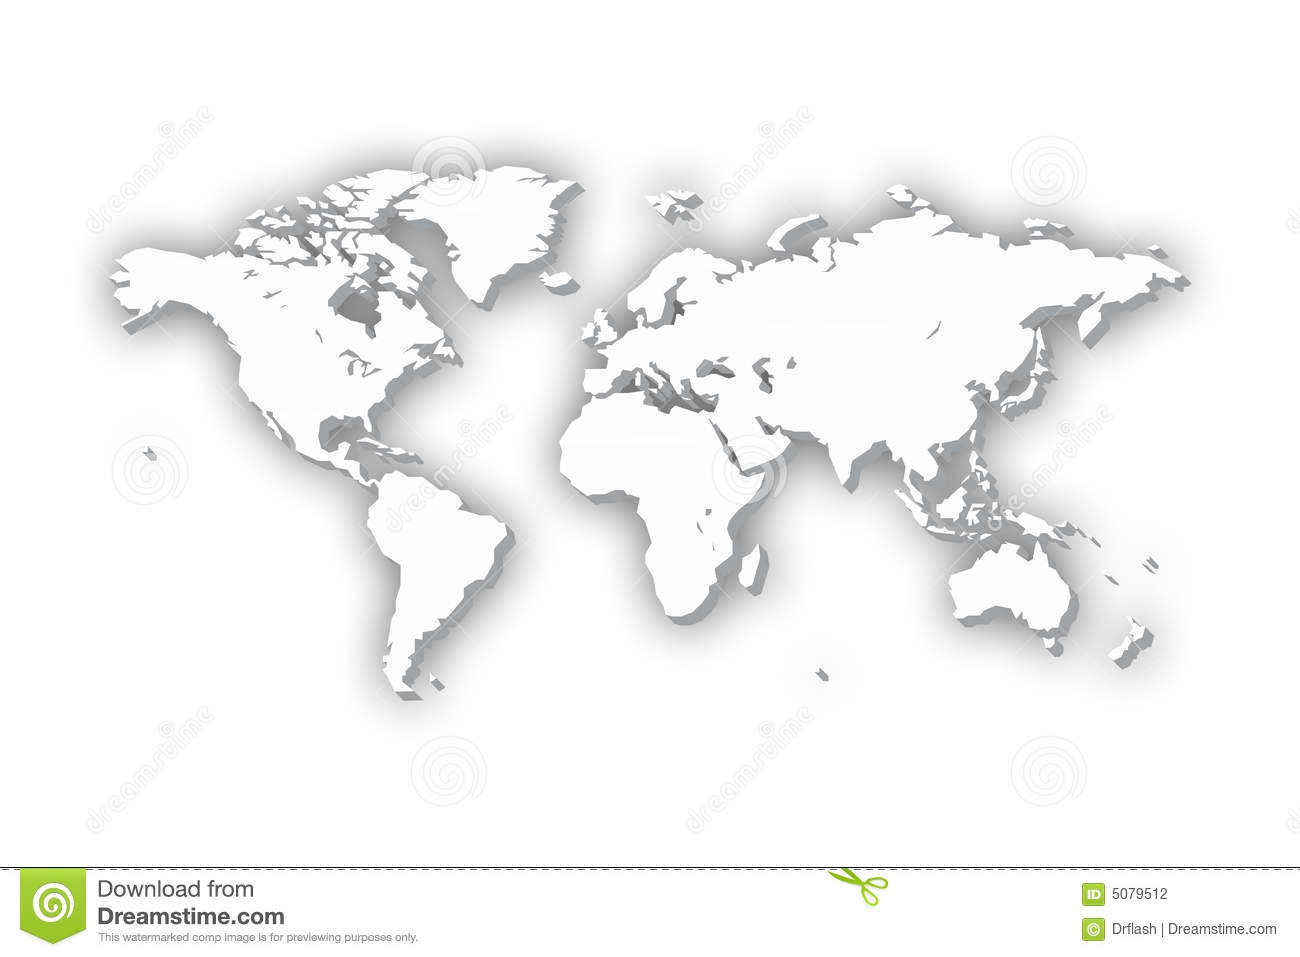 World Map In 3D Stock Photography - Image: 5079512 WELTKARTE 3D